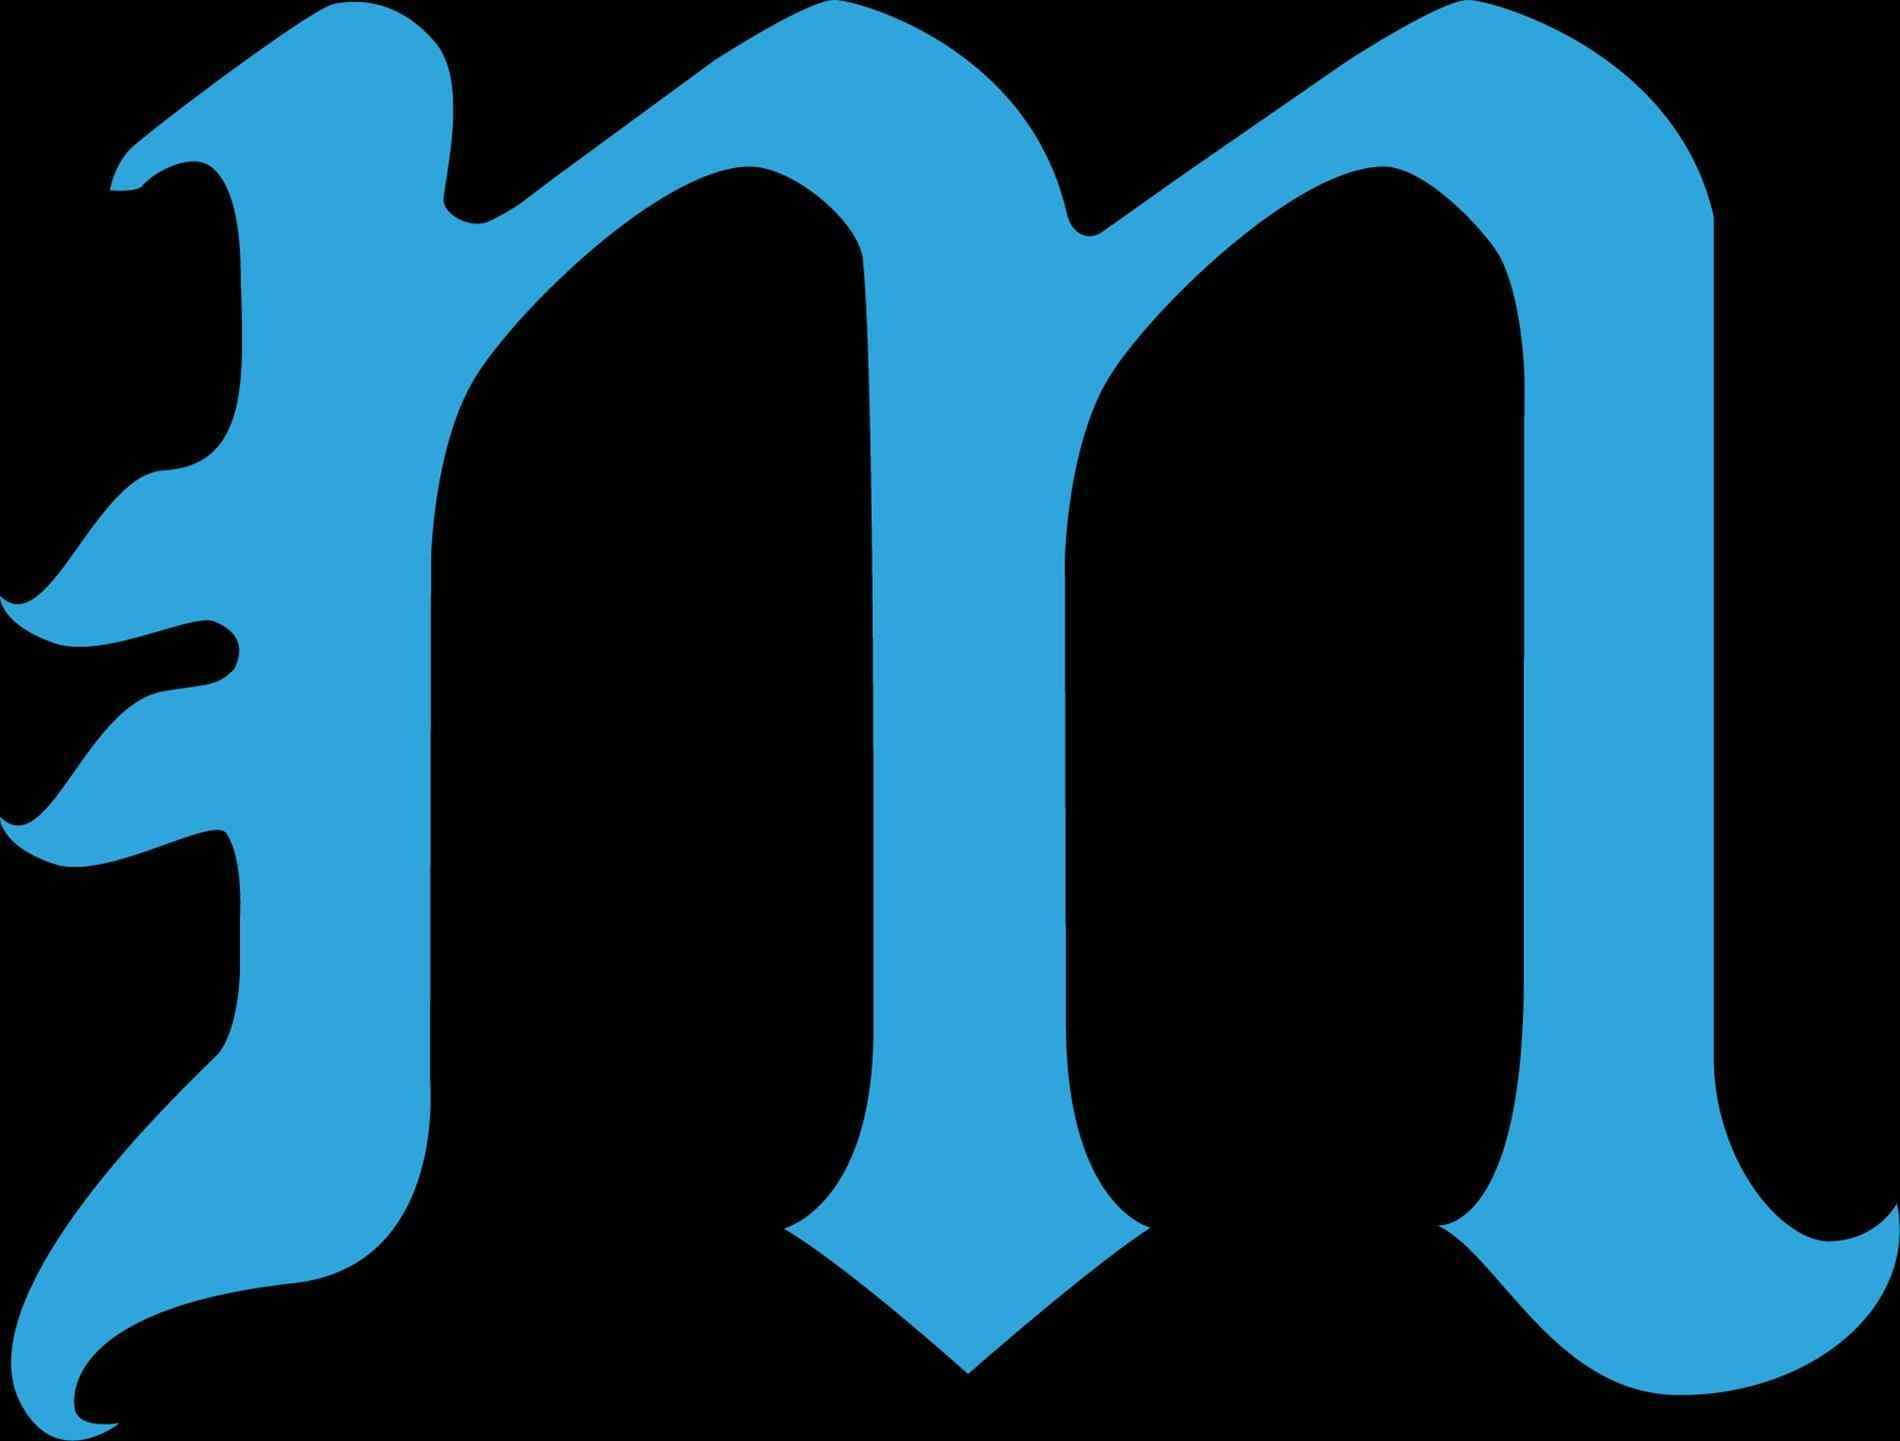 1900x1441 Png Clip Art Image Gallery Store Mad Store Blue M Png Mad Bmw M